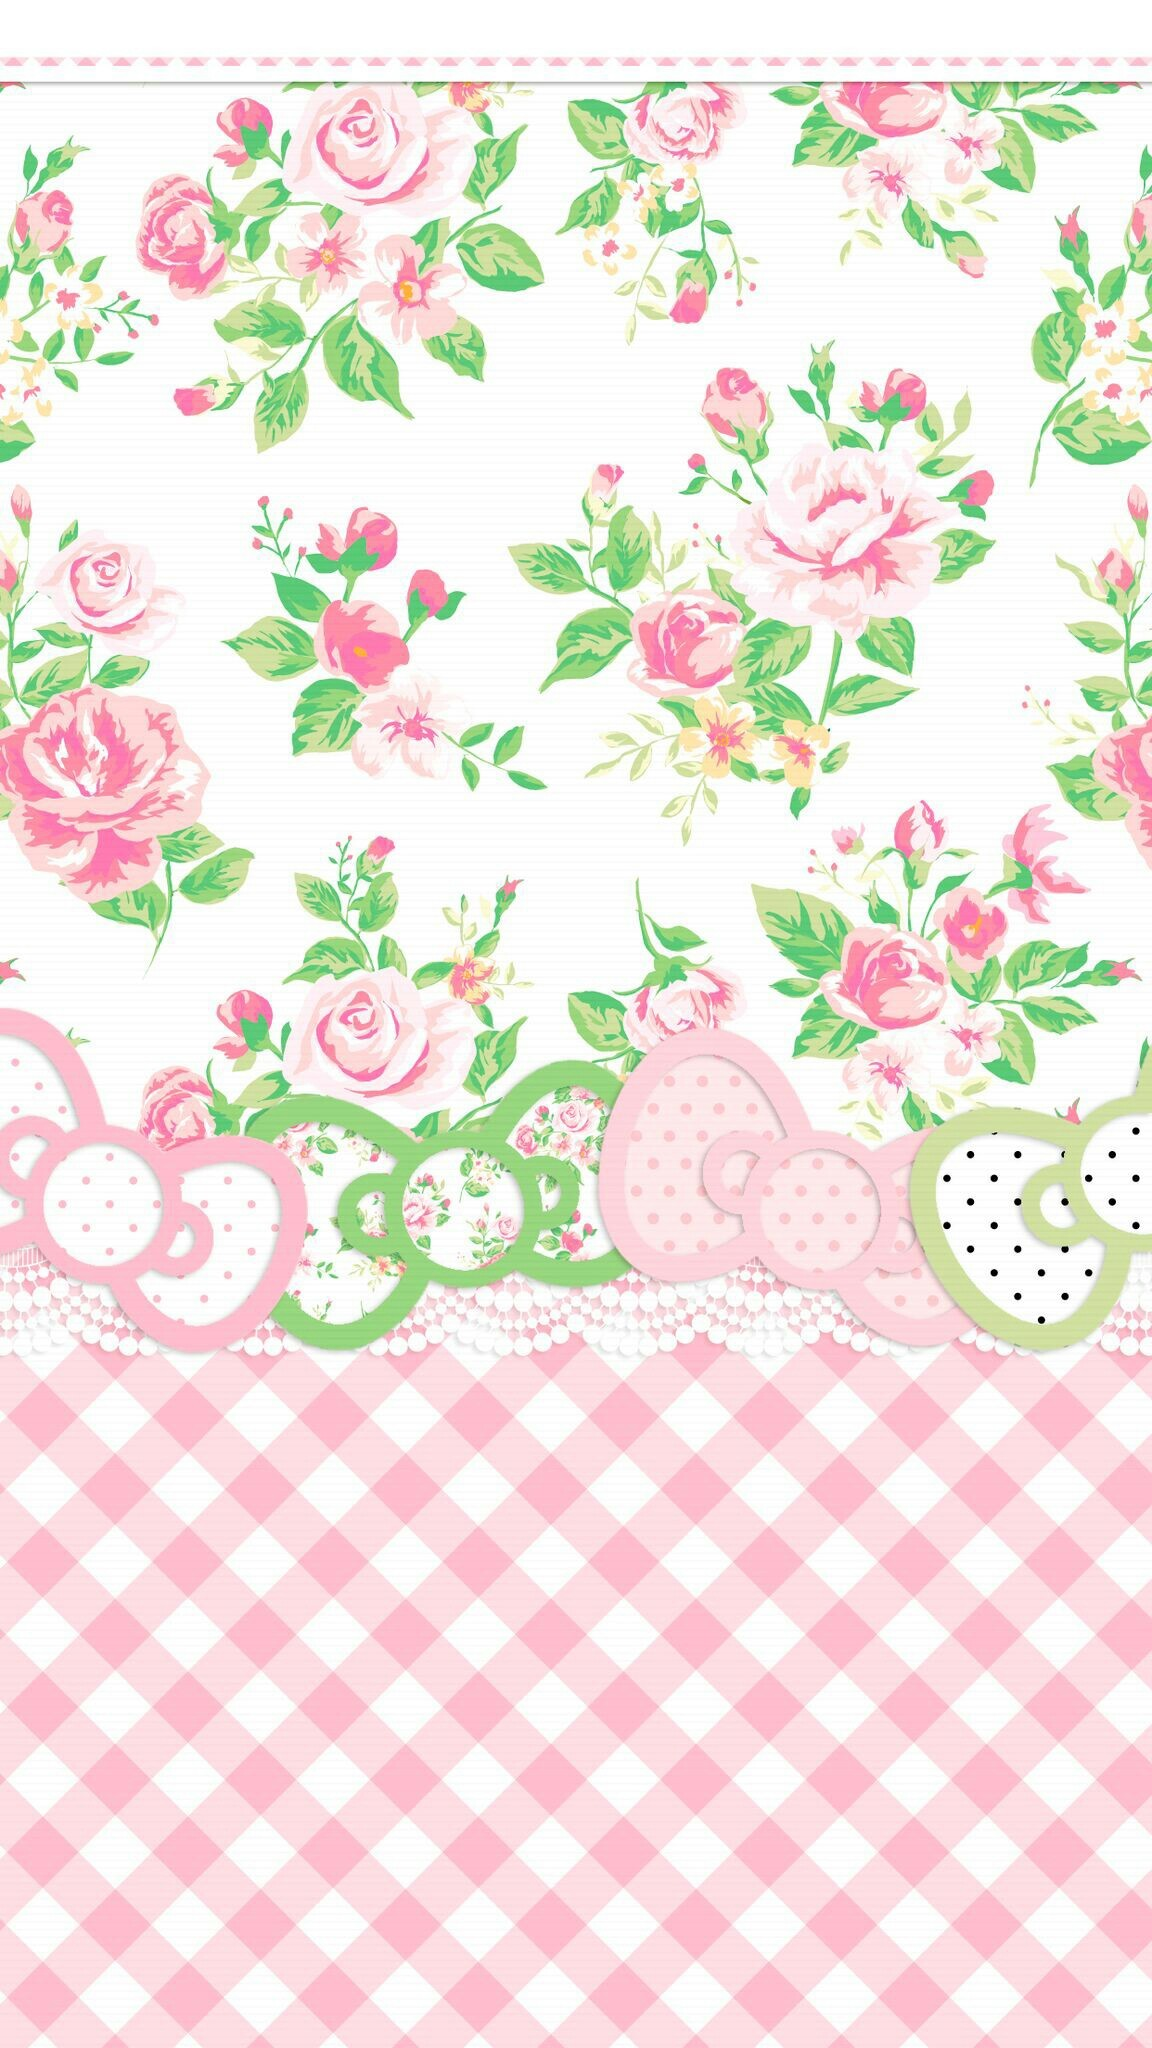 Fantastic Wallpaper Hello Kitty Floral - 875781-free-download-hello-kitty-winter-wallpaper-1152x2048  Picture_856276.jpg